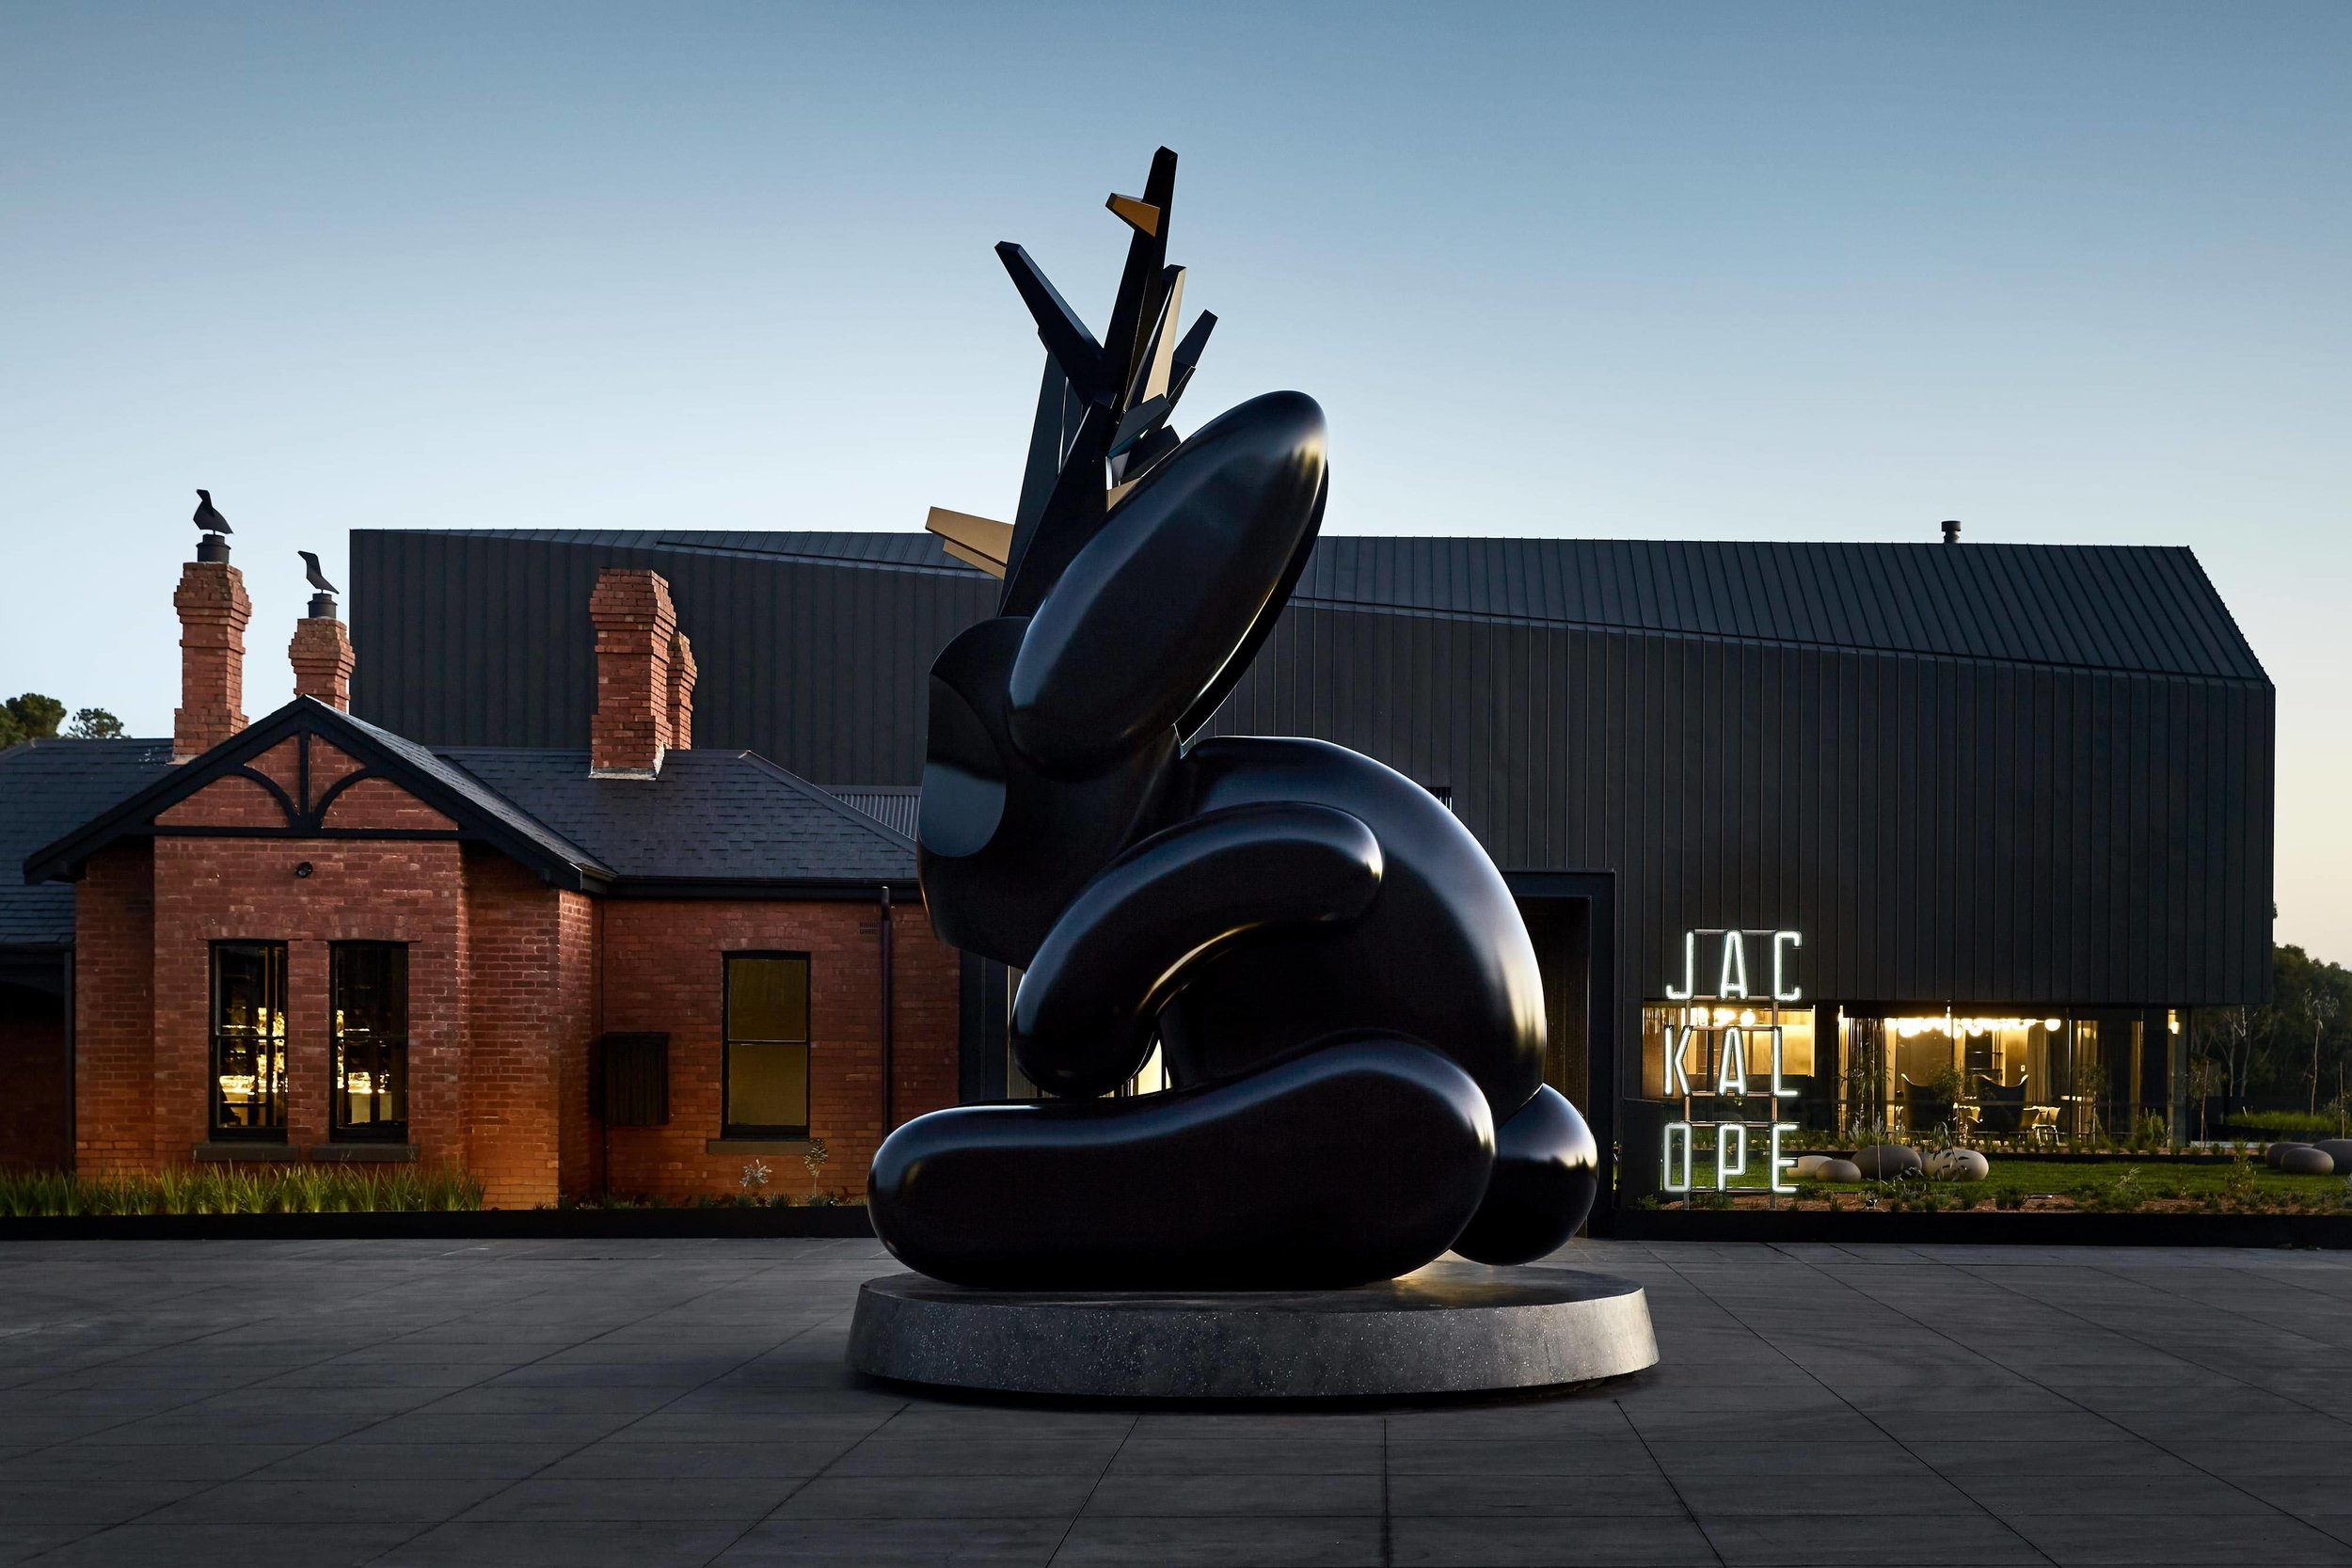 Jackalope Hotel located at 166 Balnarring Rd, Merricks North in Victoria. UAP STUDIO collaborated with artist Emily Floyd and Anna Schwartz Gallery to fabricate an artwork commission for Jackalope Hotel. Image credit: Emily Floyd.